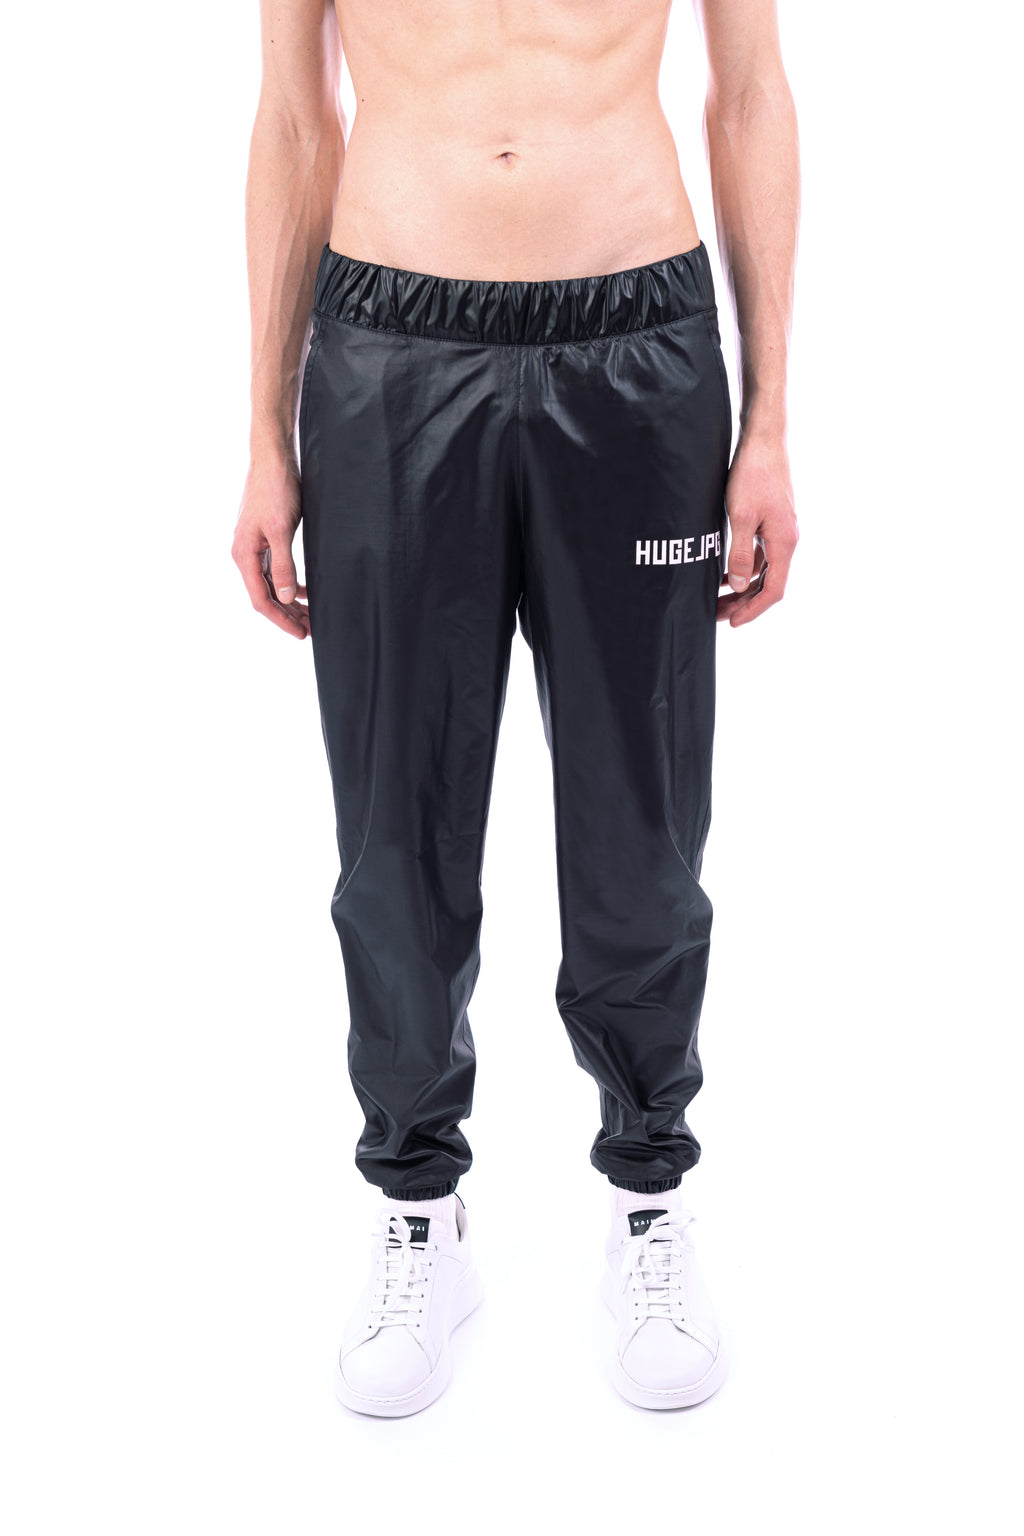 Direct Trackpants